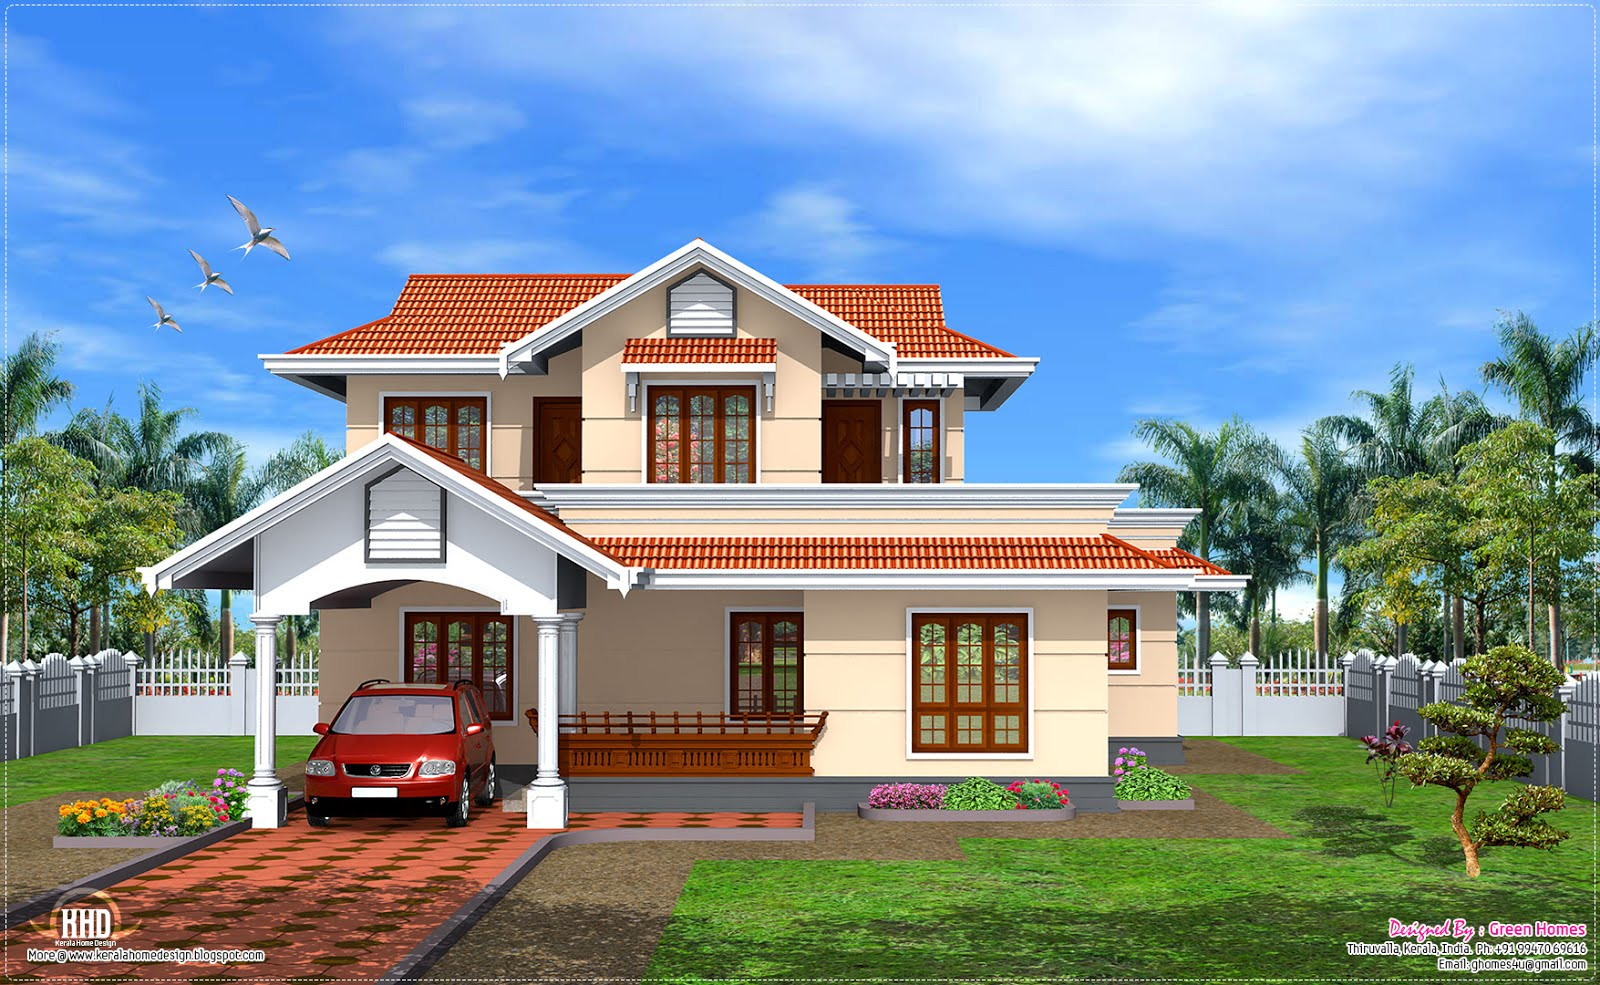 Kerala model 1900 home design kerala home design New home models and plans